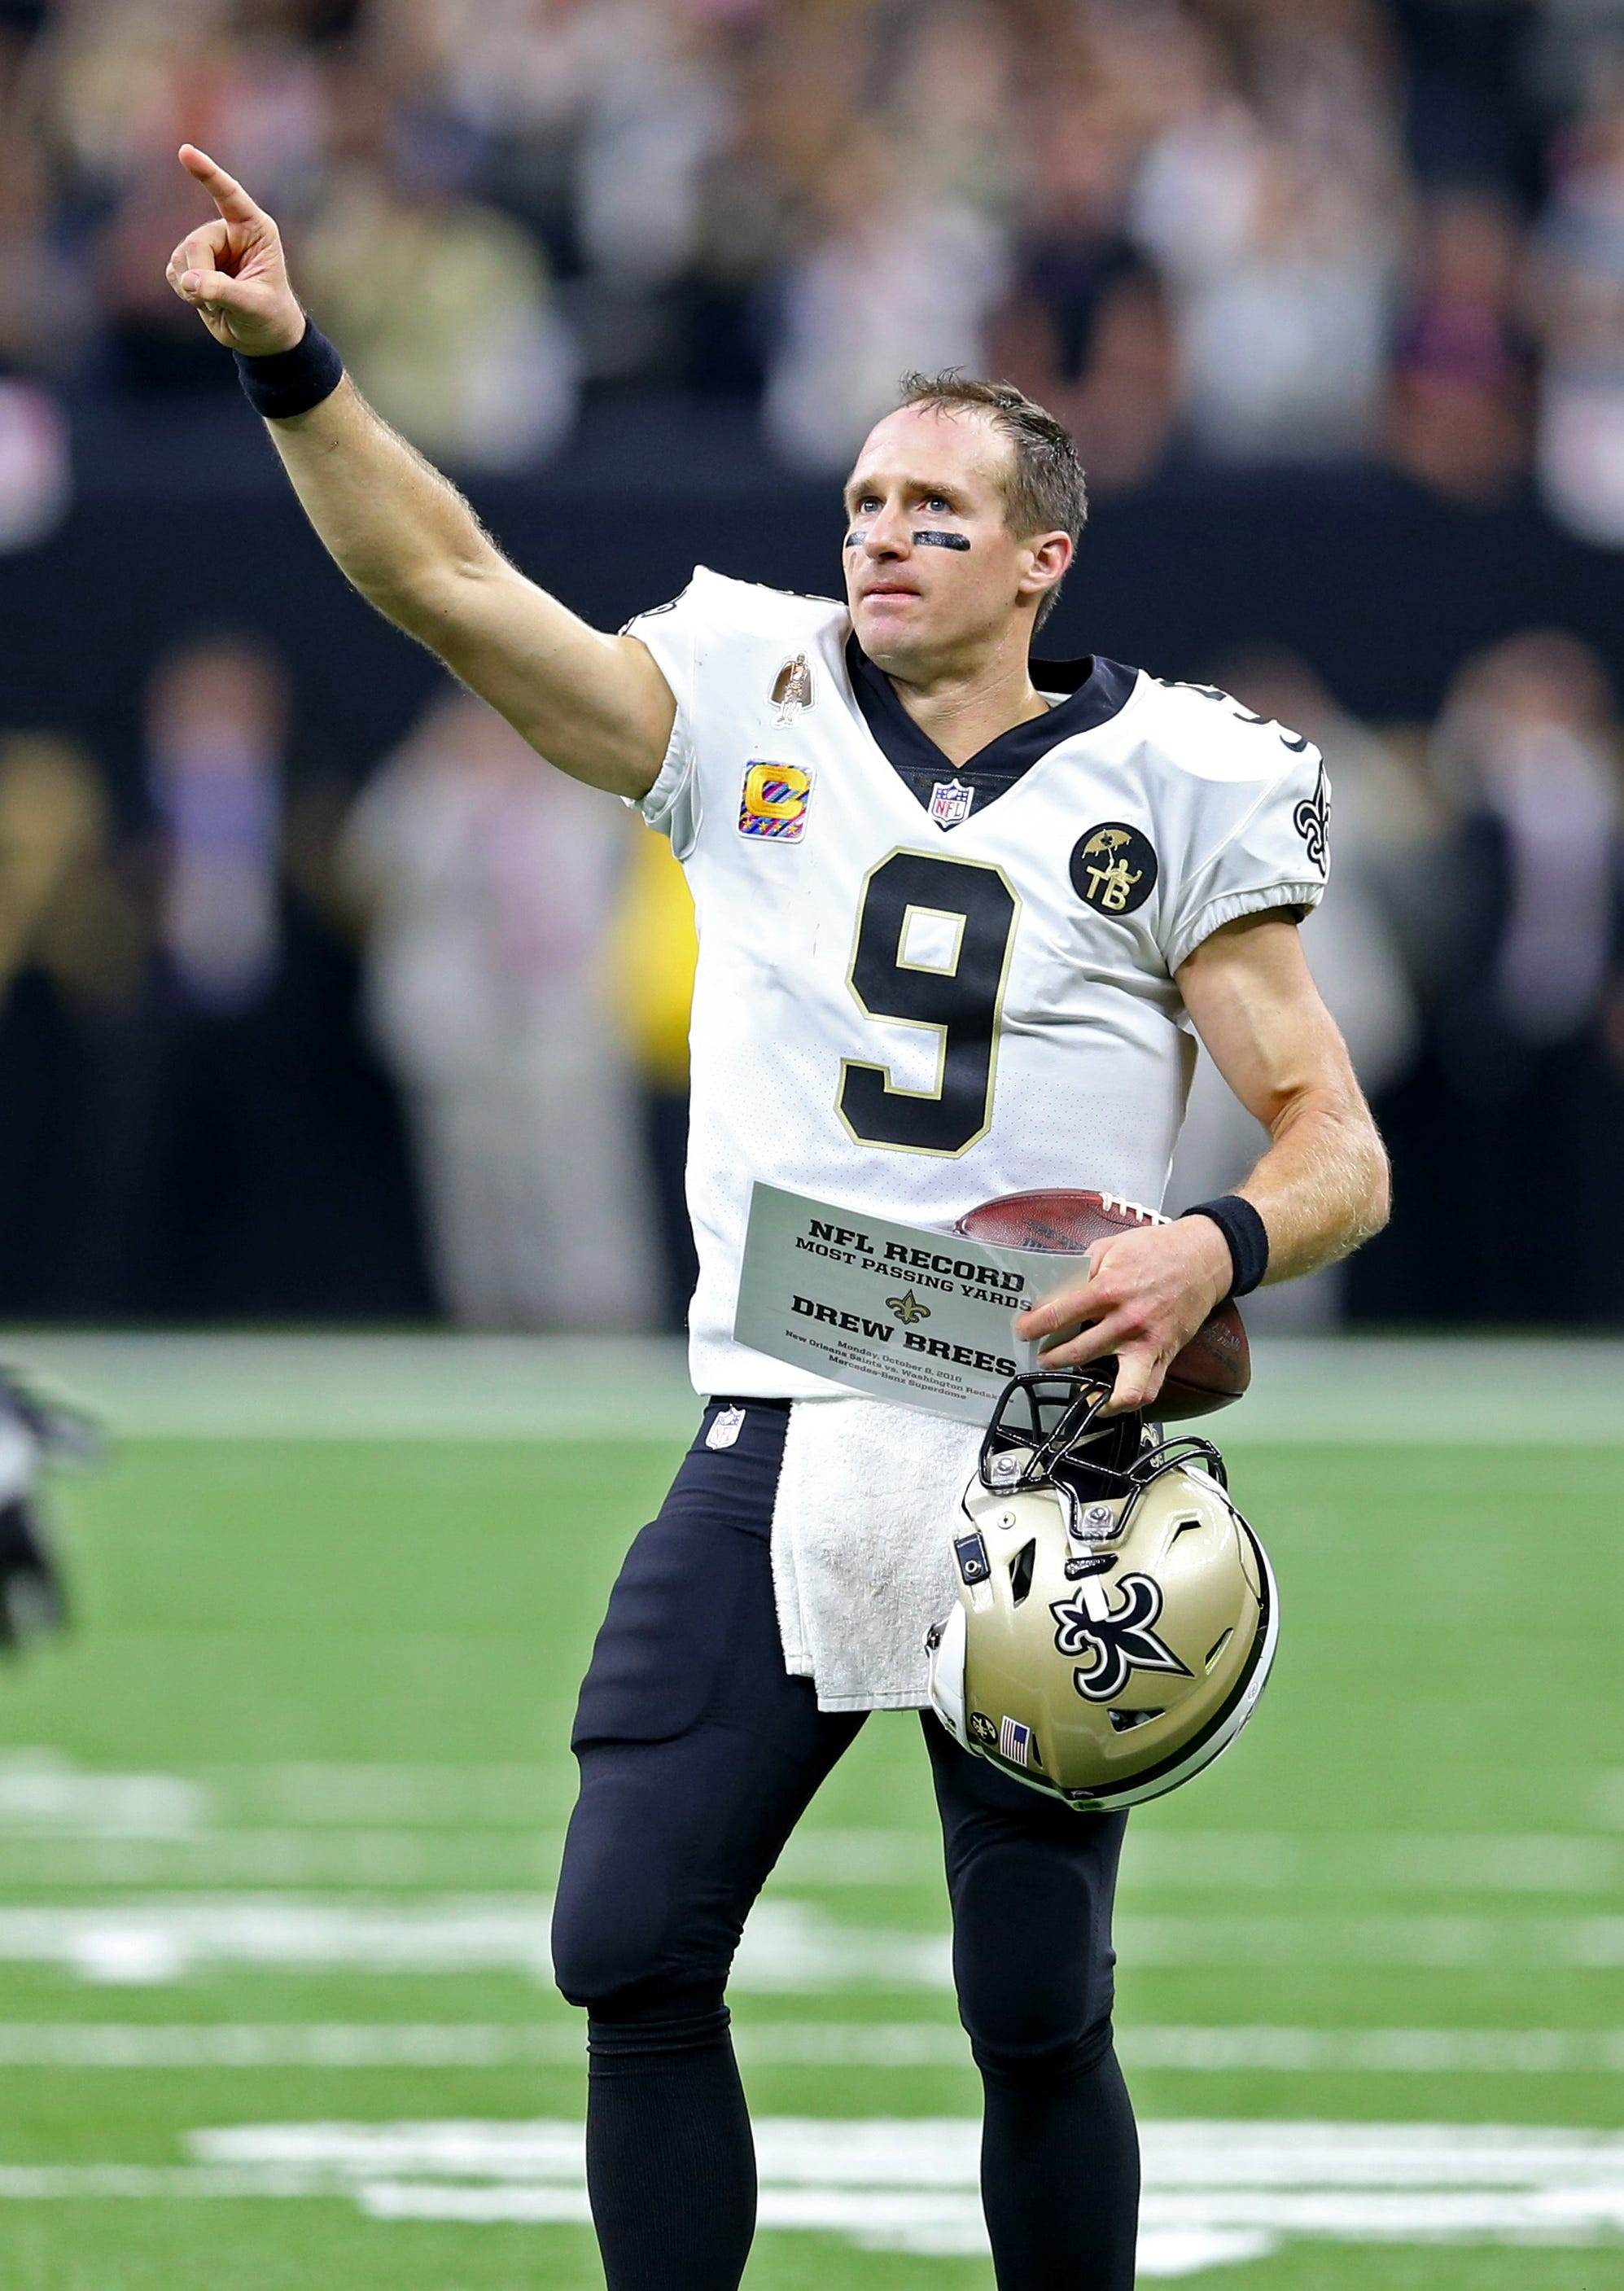 Oct 8, 2018; New Orleans, LA, USA; New Orleans Saints quarterback Drew Brees (9) acknowledges the crowd after setting the all-time NFL passing yardage mark against the Washington Redskins in the second quarter at the Mercedes-Benz Superdome. Mandatory Credit: Chuck Cook-USA TODAY Sports